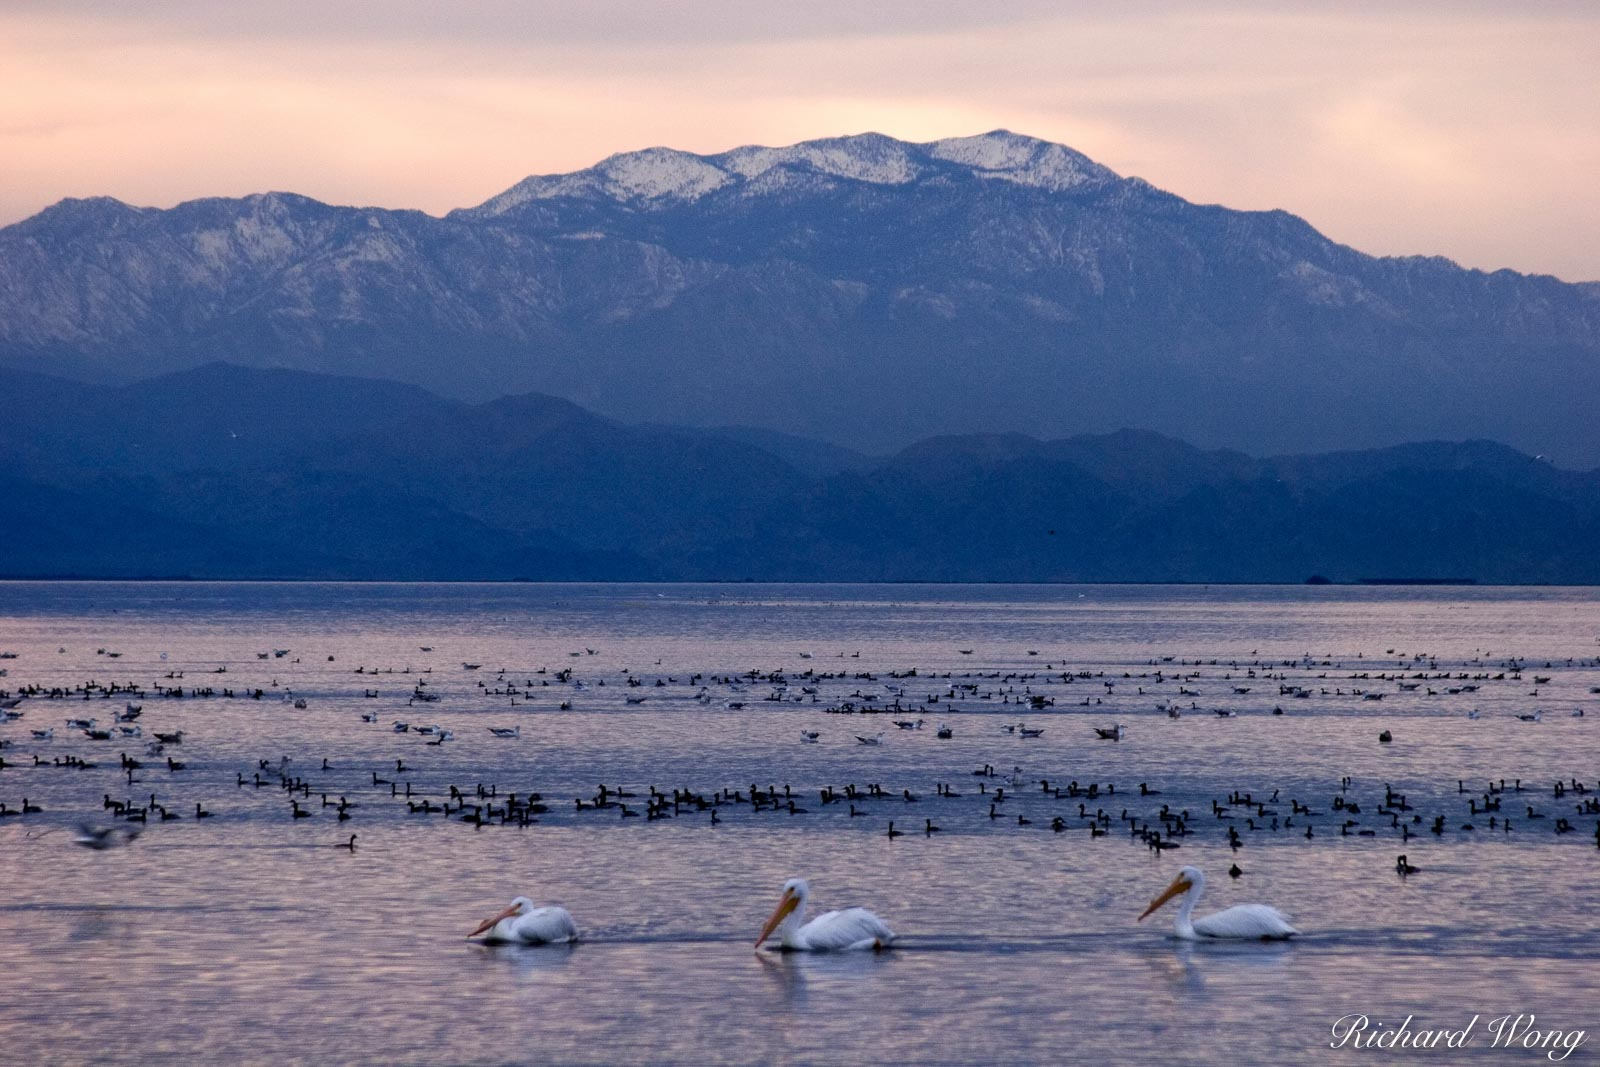 American White Pelicans and Other Migratory Birds in Salton Sea with Mount San Jacinto in the Background, Riverside County, California, photo, photo